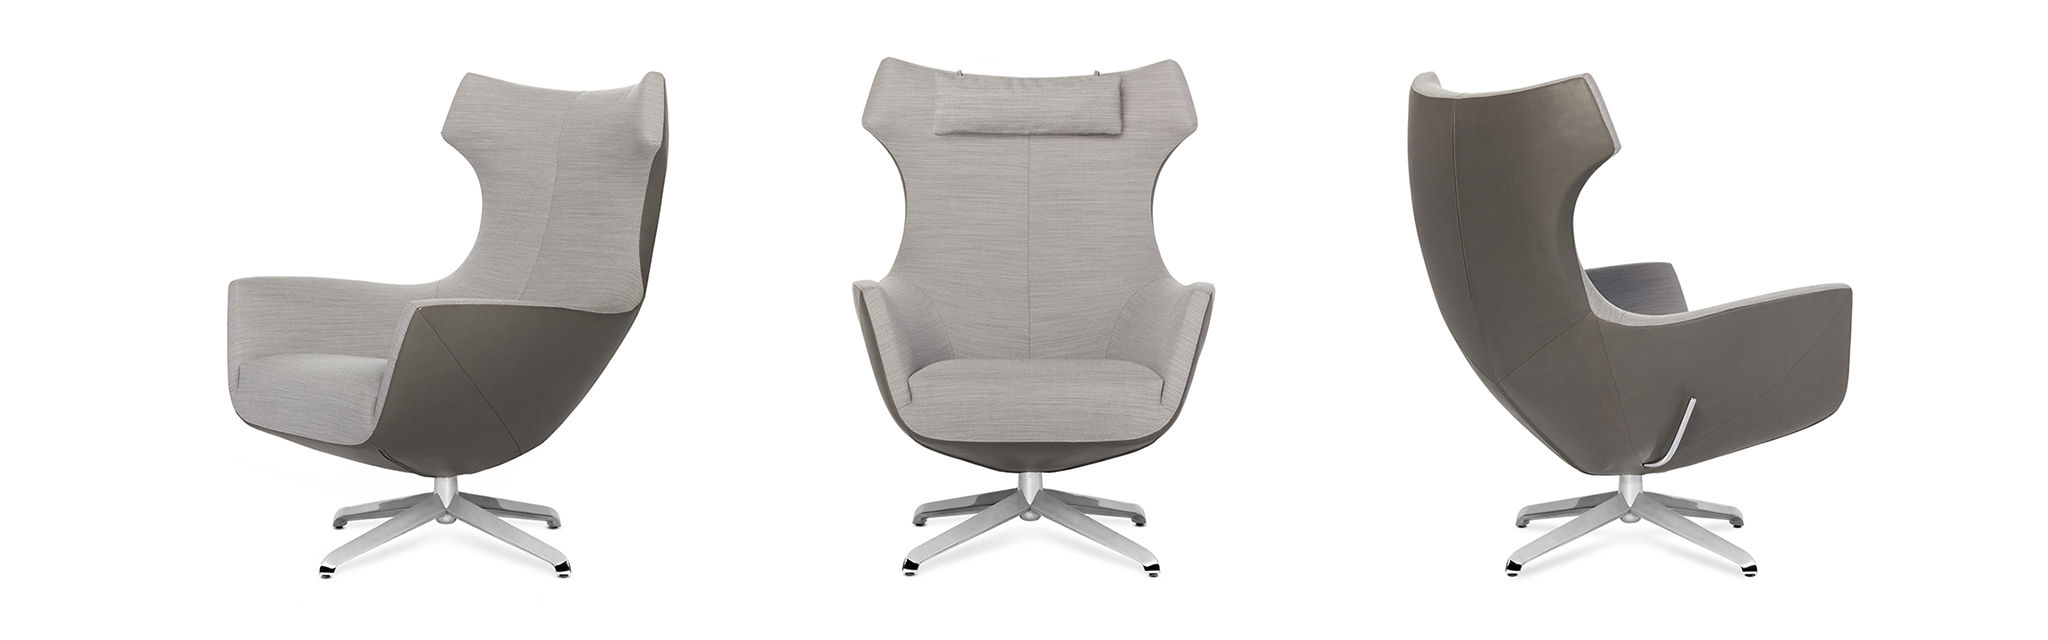 Design On Stock Bloq Fauteuil.Nosto Fauteuil Poef Design On Stock